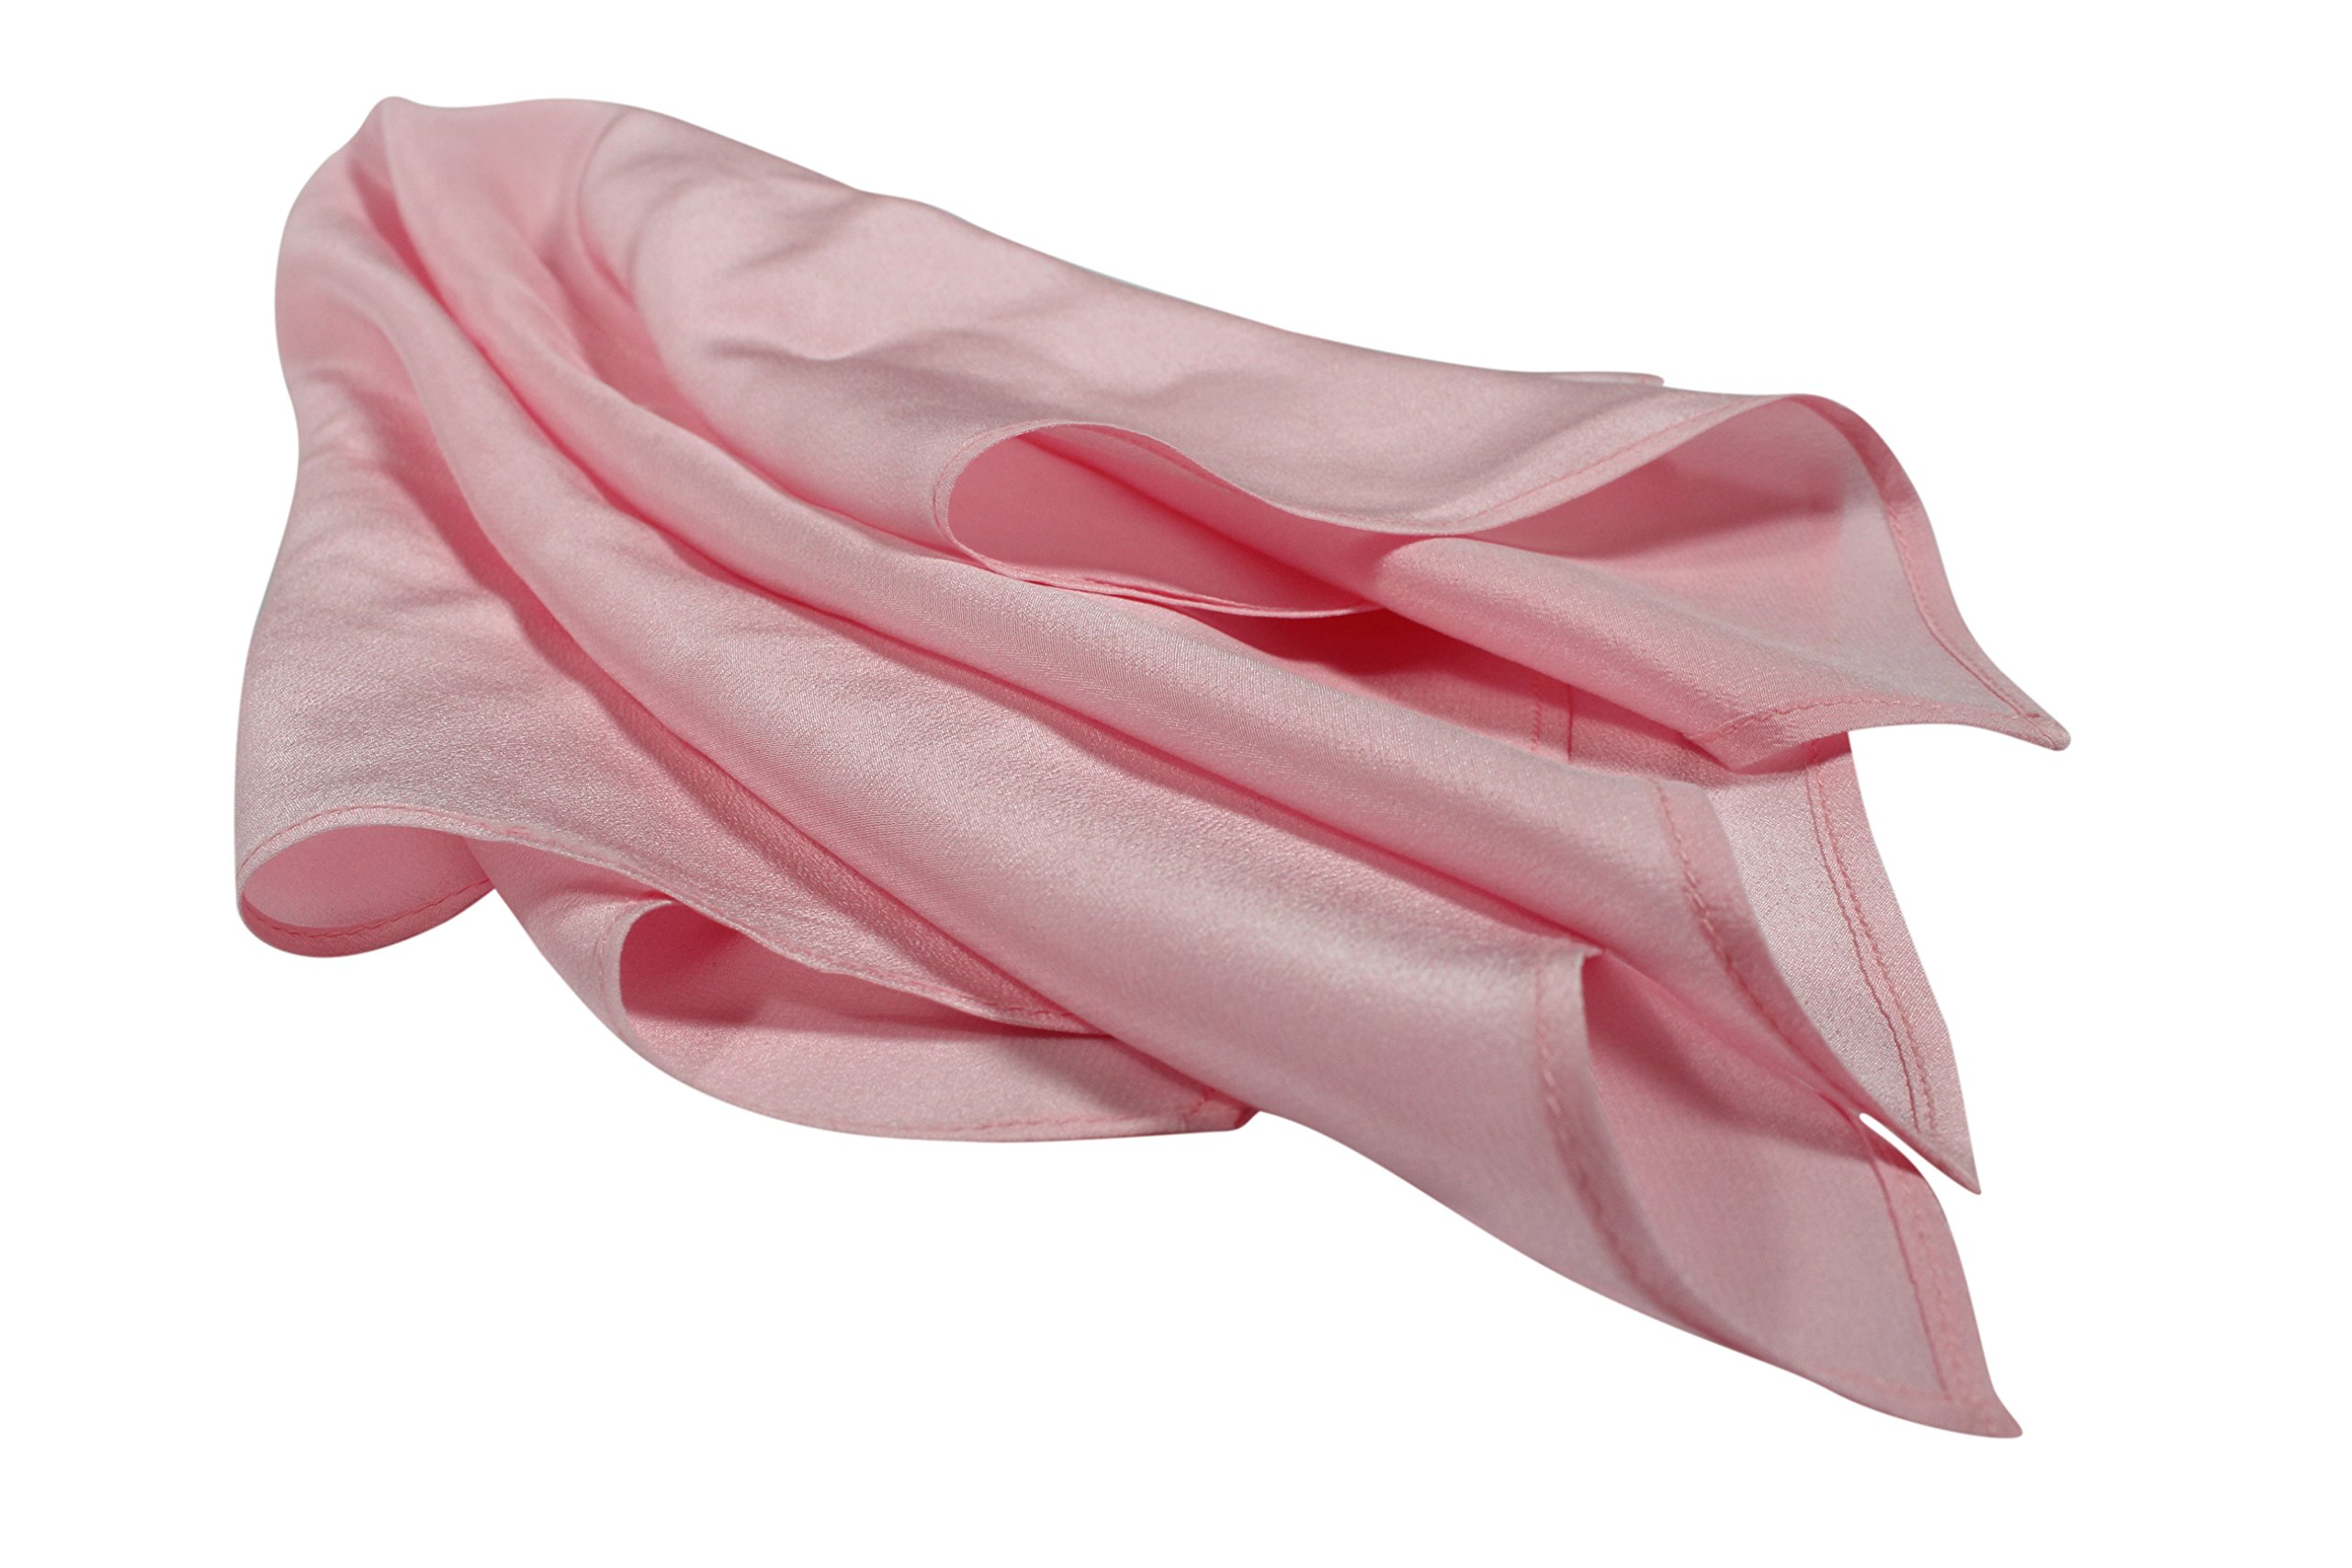 Fine Pink Silk Pocket Square - Full-Sized 16''x16'' by Royal Silk (Image #3)